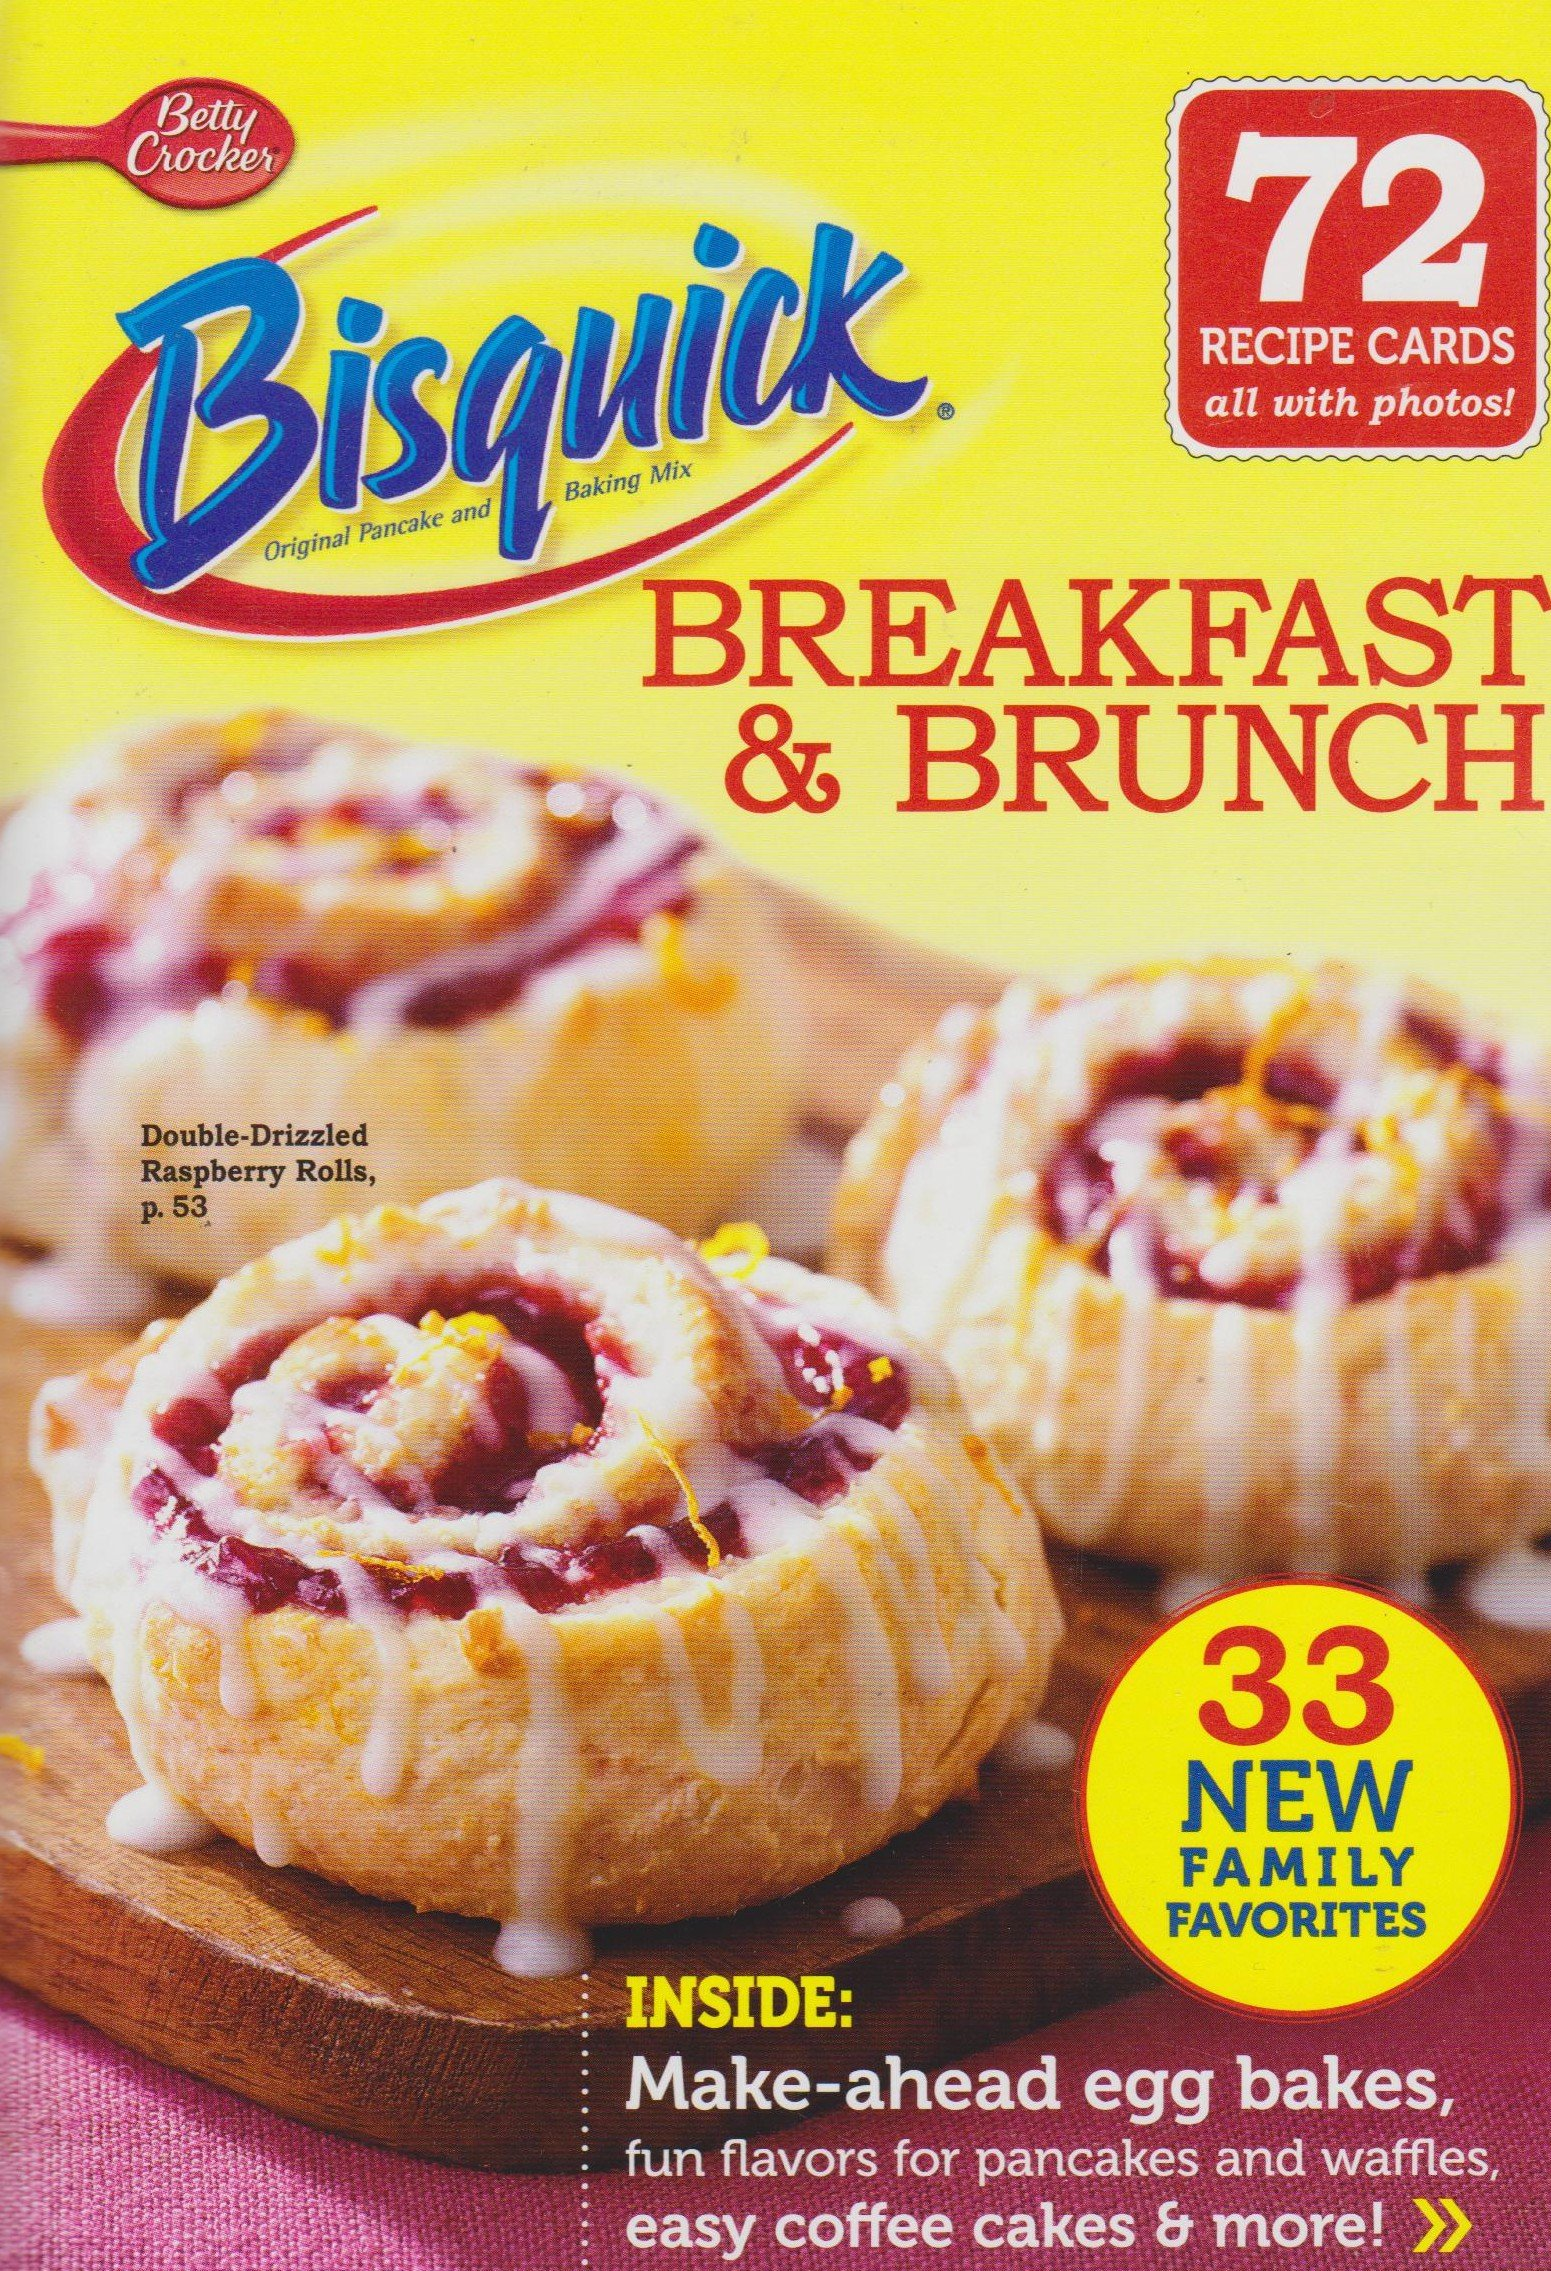 Bisquick Breakfast & Brunch ... Betty Crocker ... 33 New Family Favorites ... 72 Recipe Cards all with photos ... Lots of Gluten Free Recipes PDF